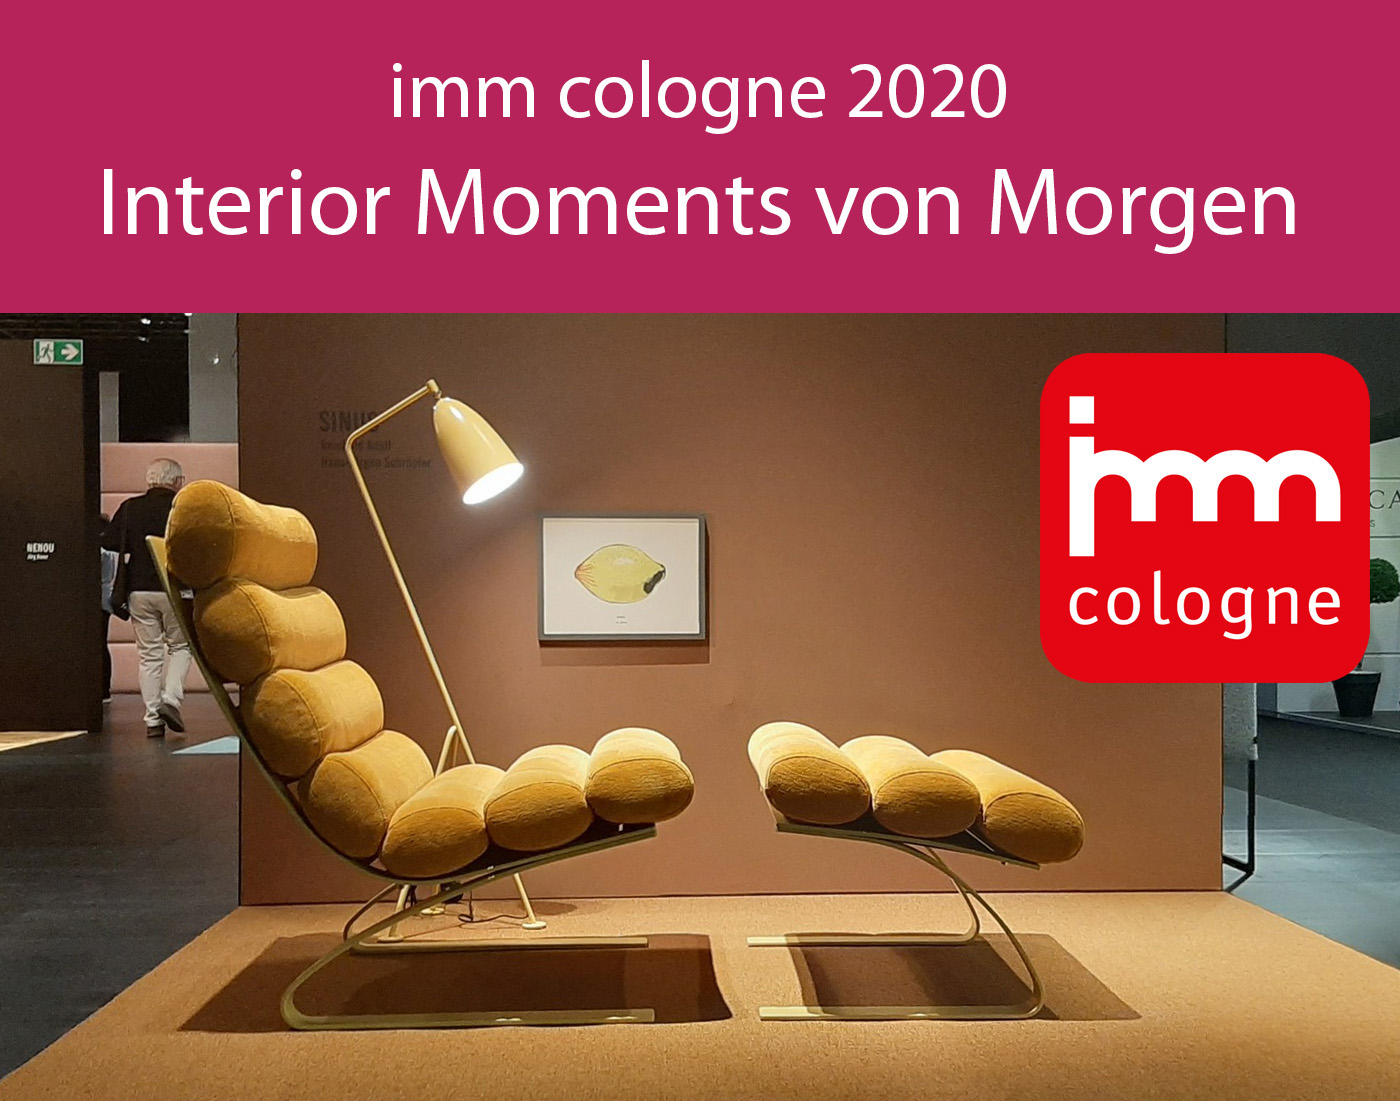 imm cologne 2020 - Interior Moments von Morgen